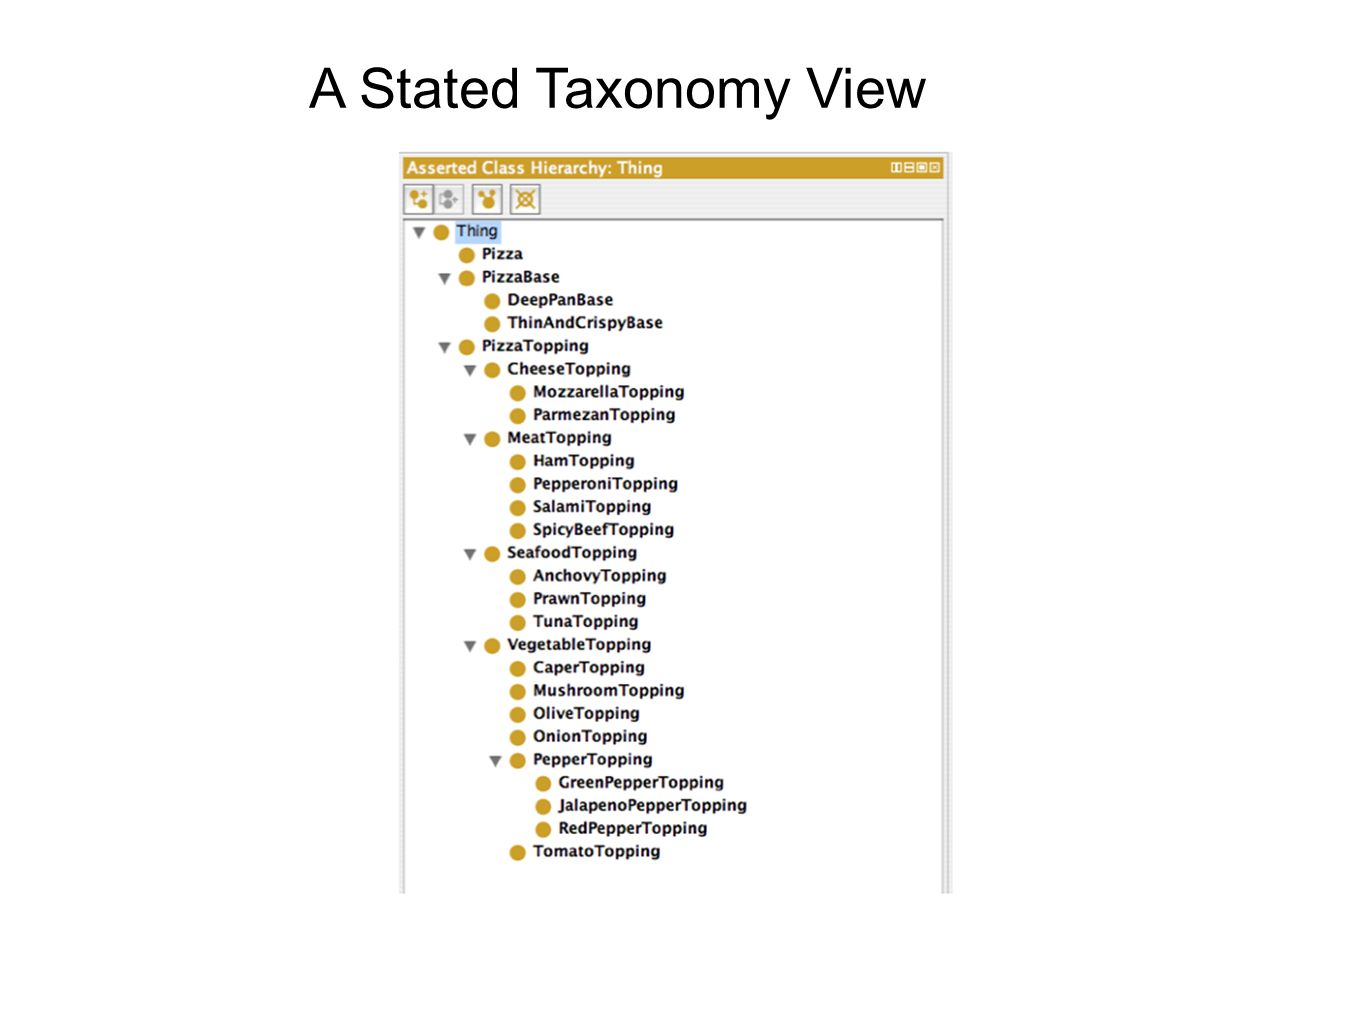 A Stated Taxonomy View